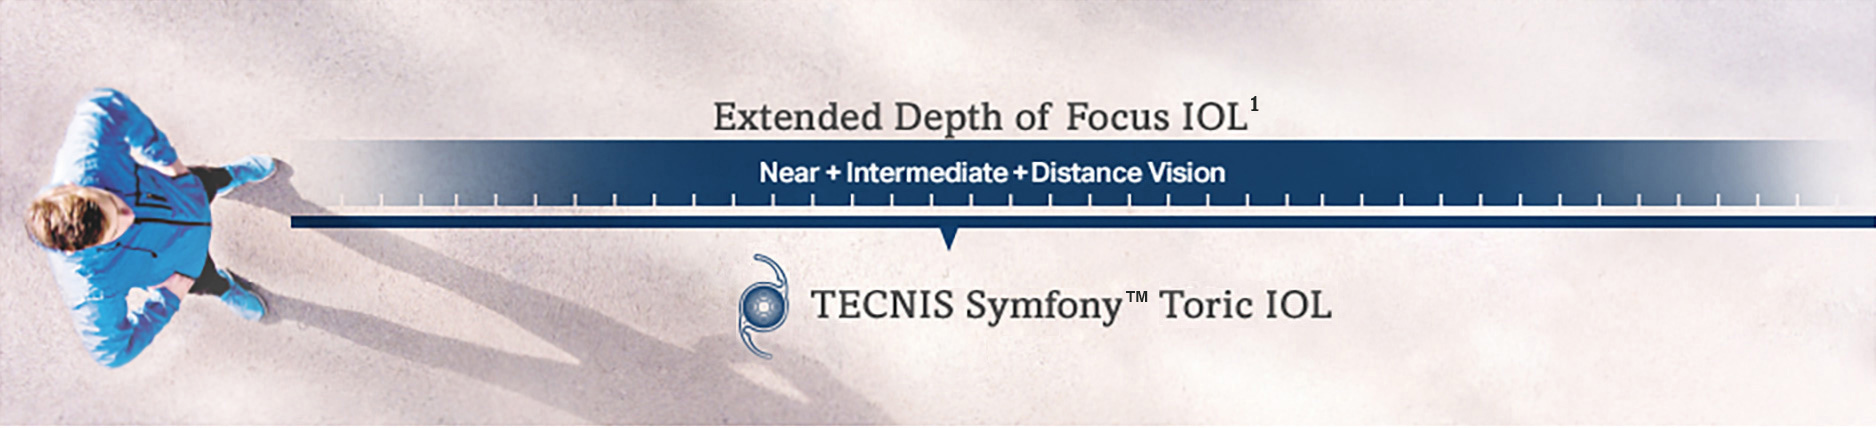 Man showing intermediate vision and distance visual range of TECNIS® Symfony® Toric IOL